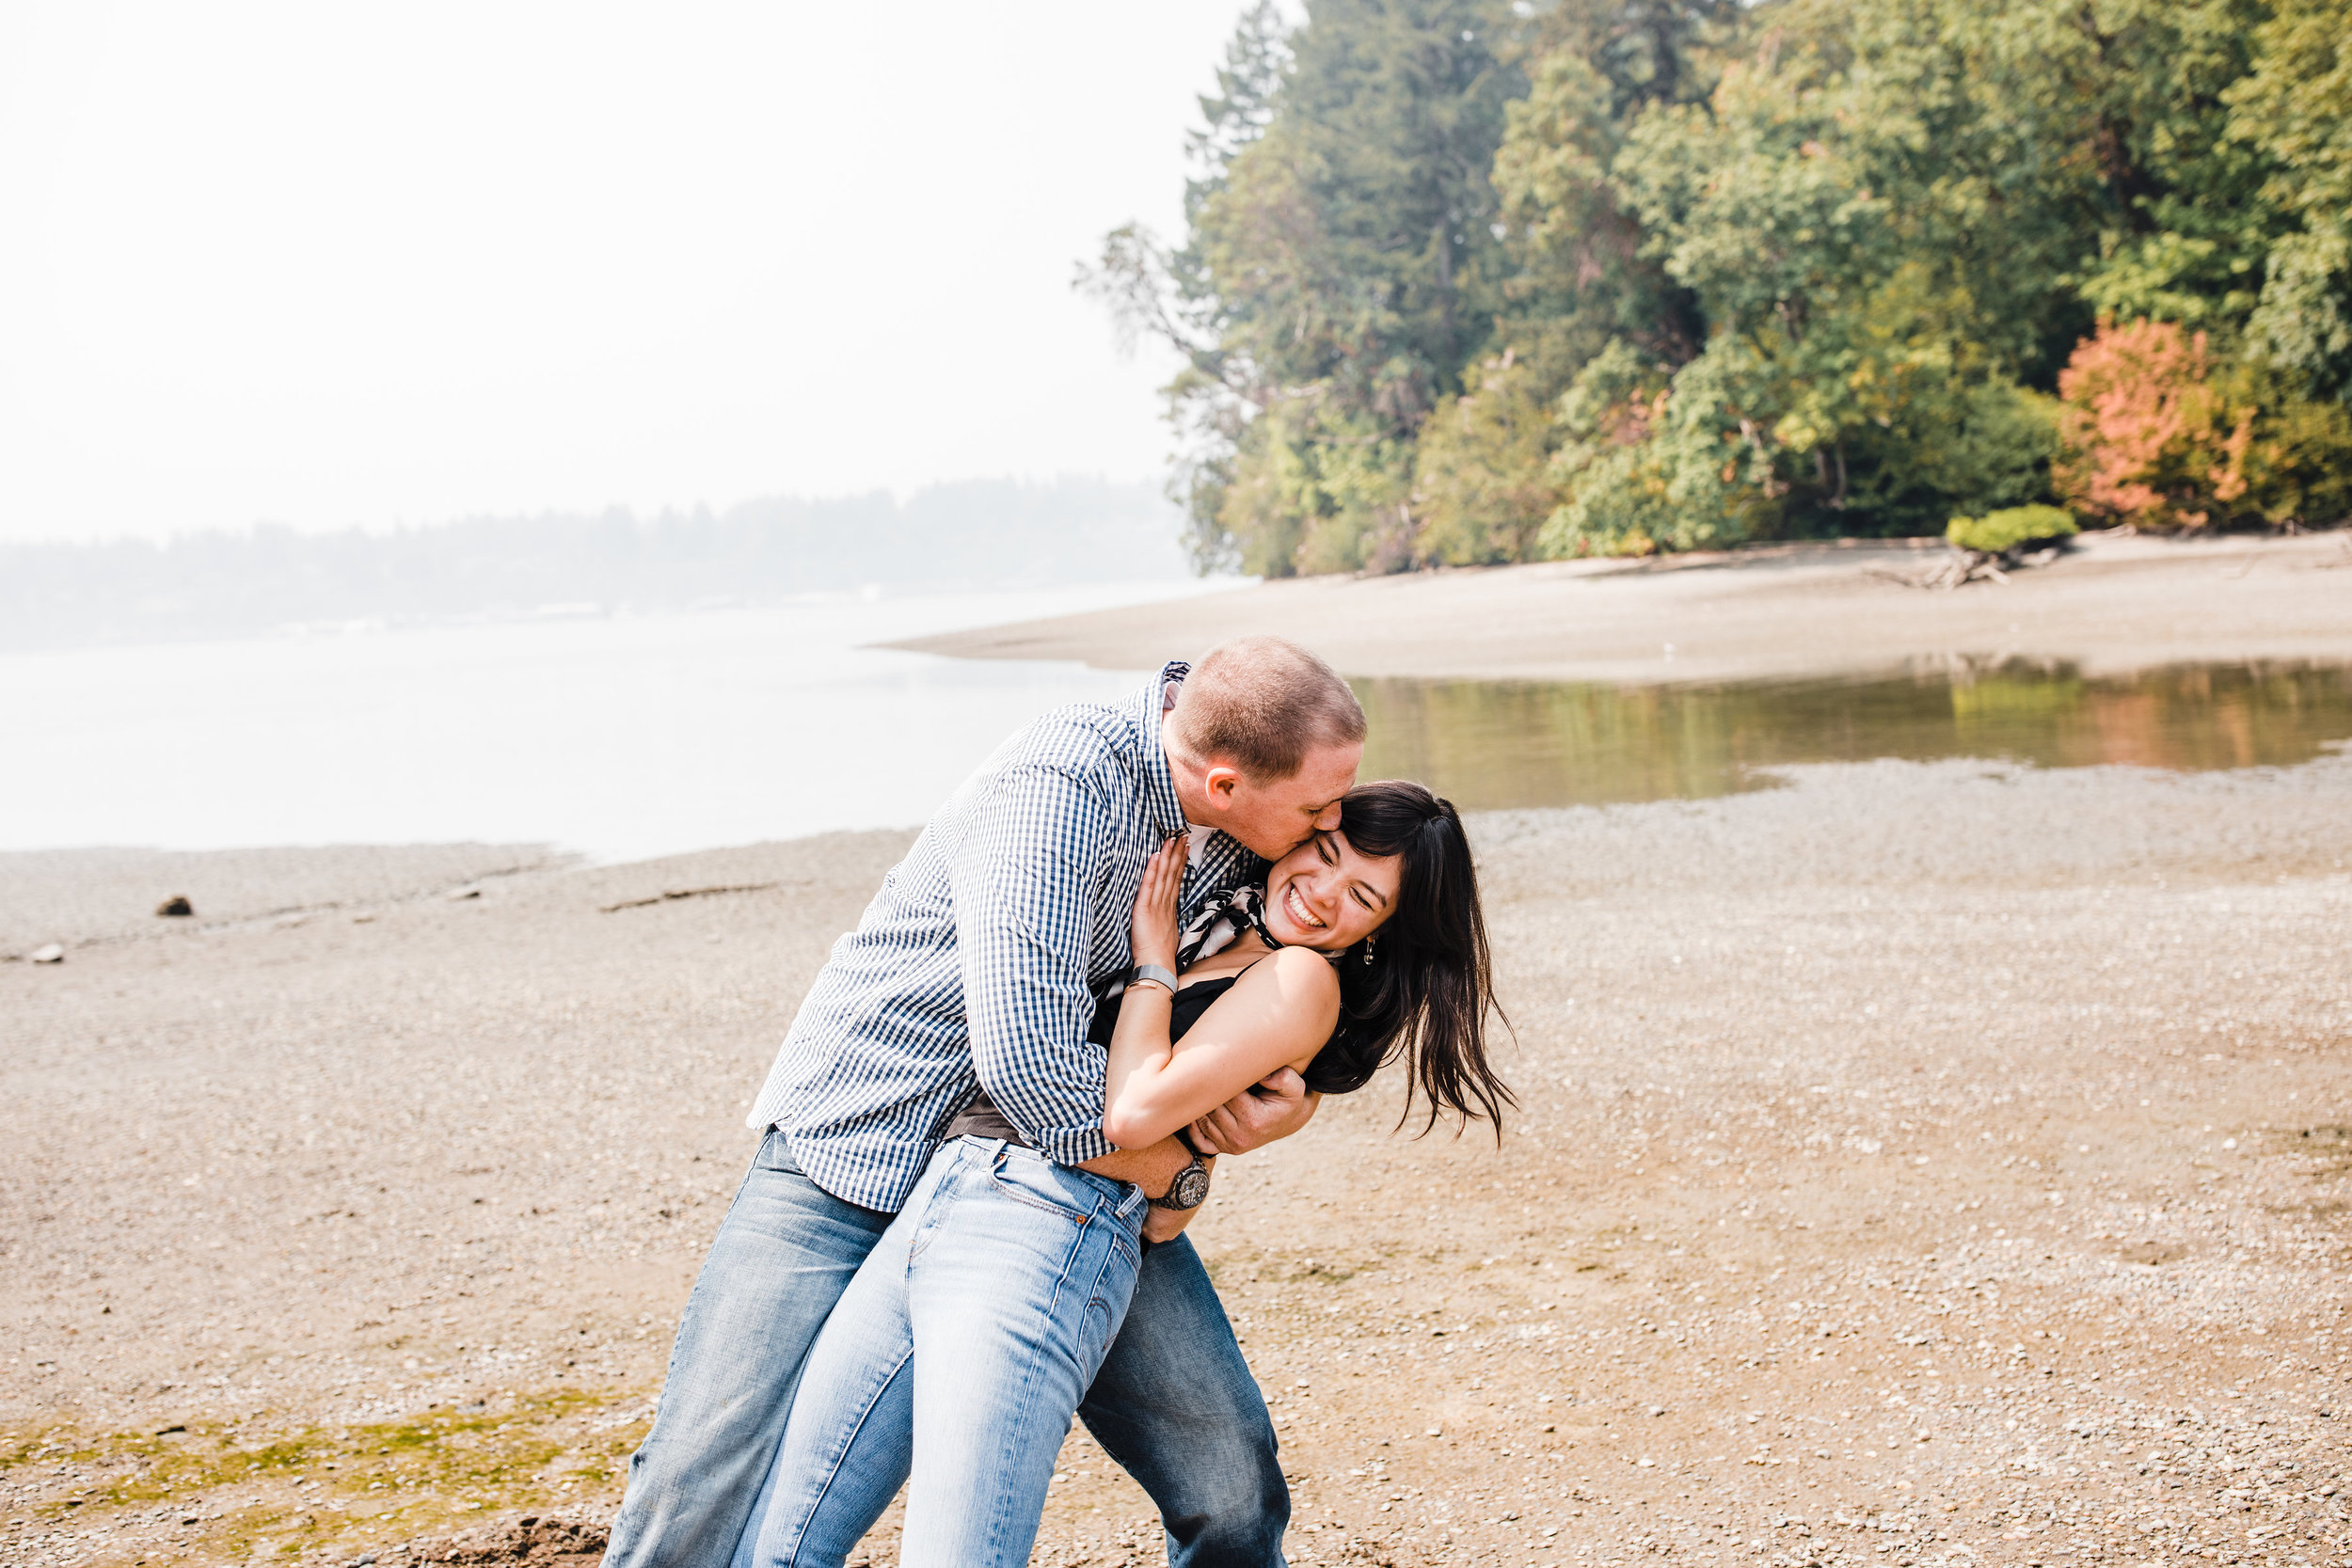 best professional engagement photographer in olympia washington beach smiling playful kissing hugging